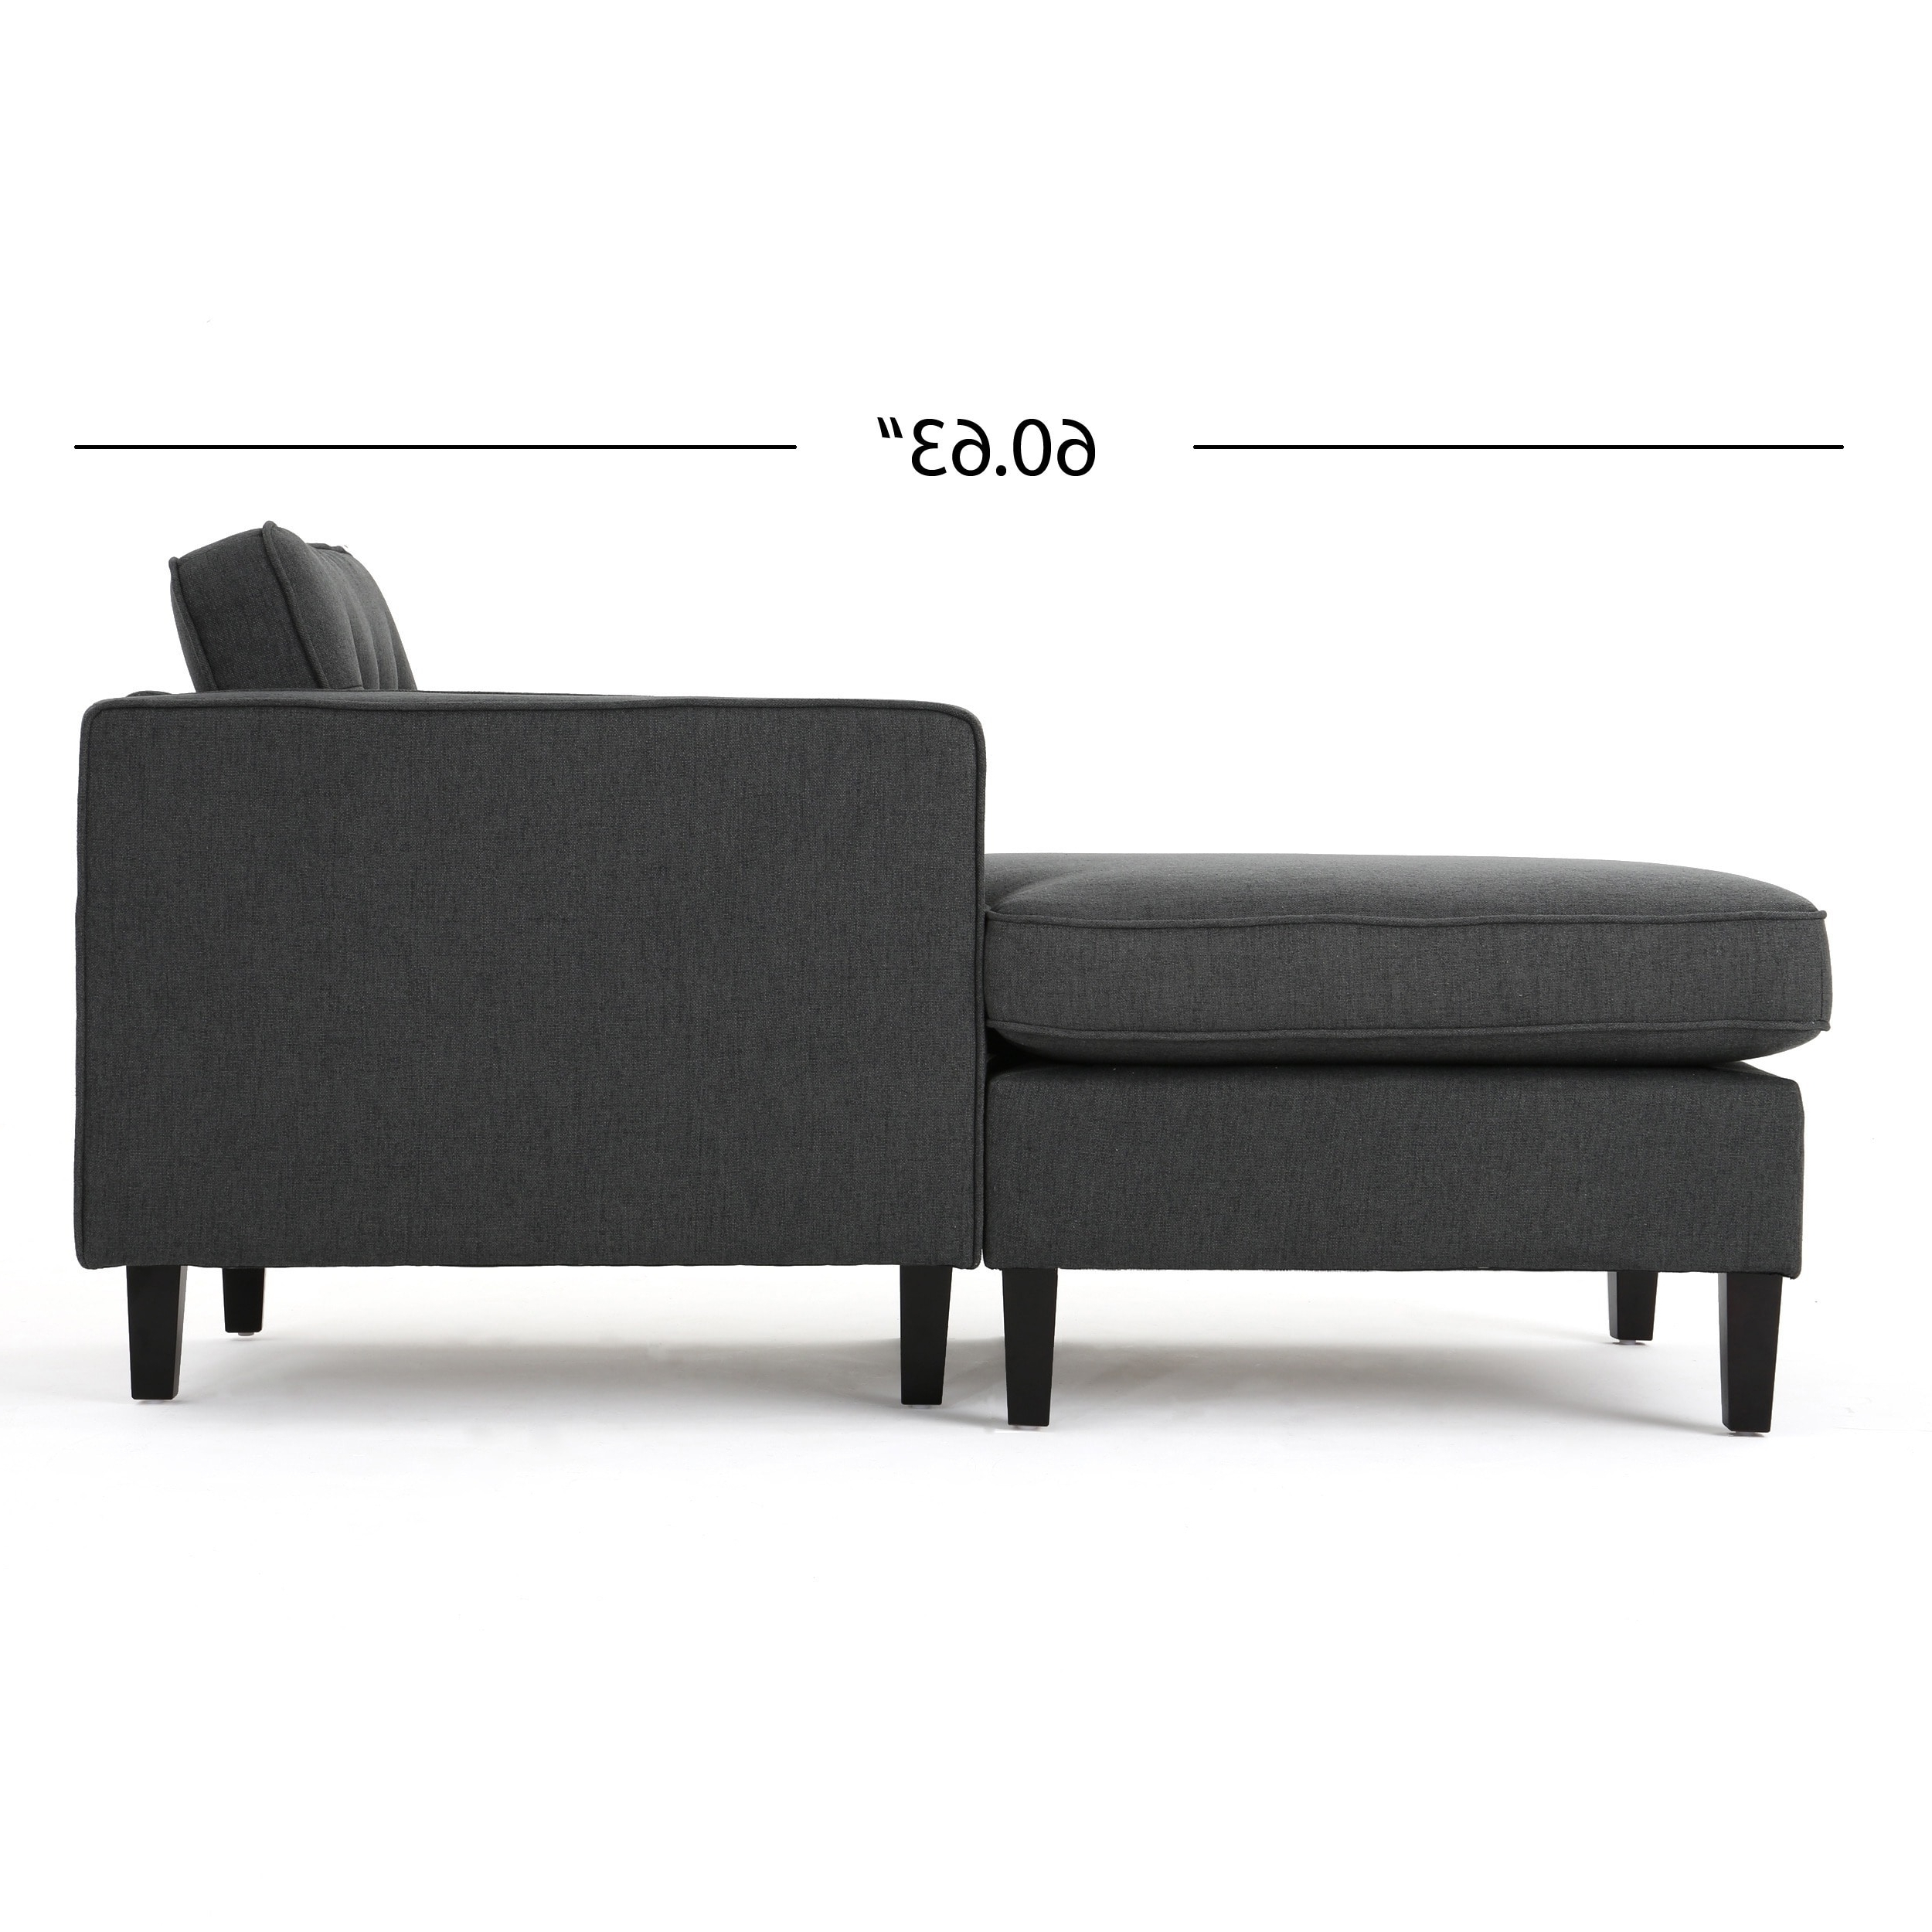 Wilder Mid Century Modern 2 Piece Fabric Chaise Sectional Sofa Regarding Widely Used Cheap Chaise Sofas (View 15 of 15)